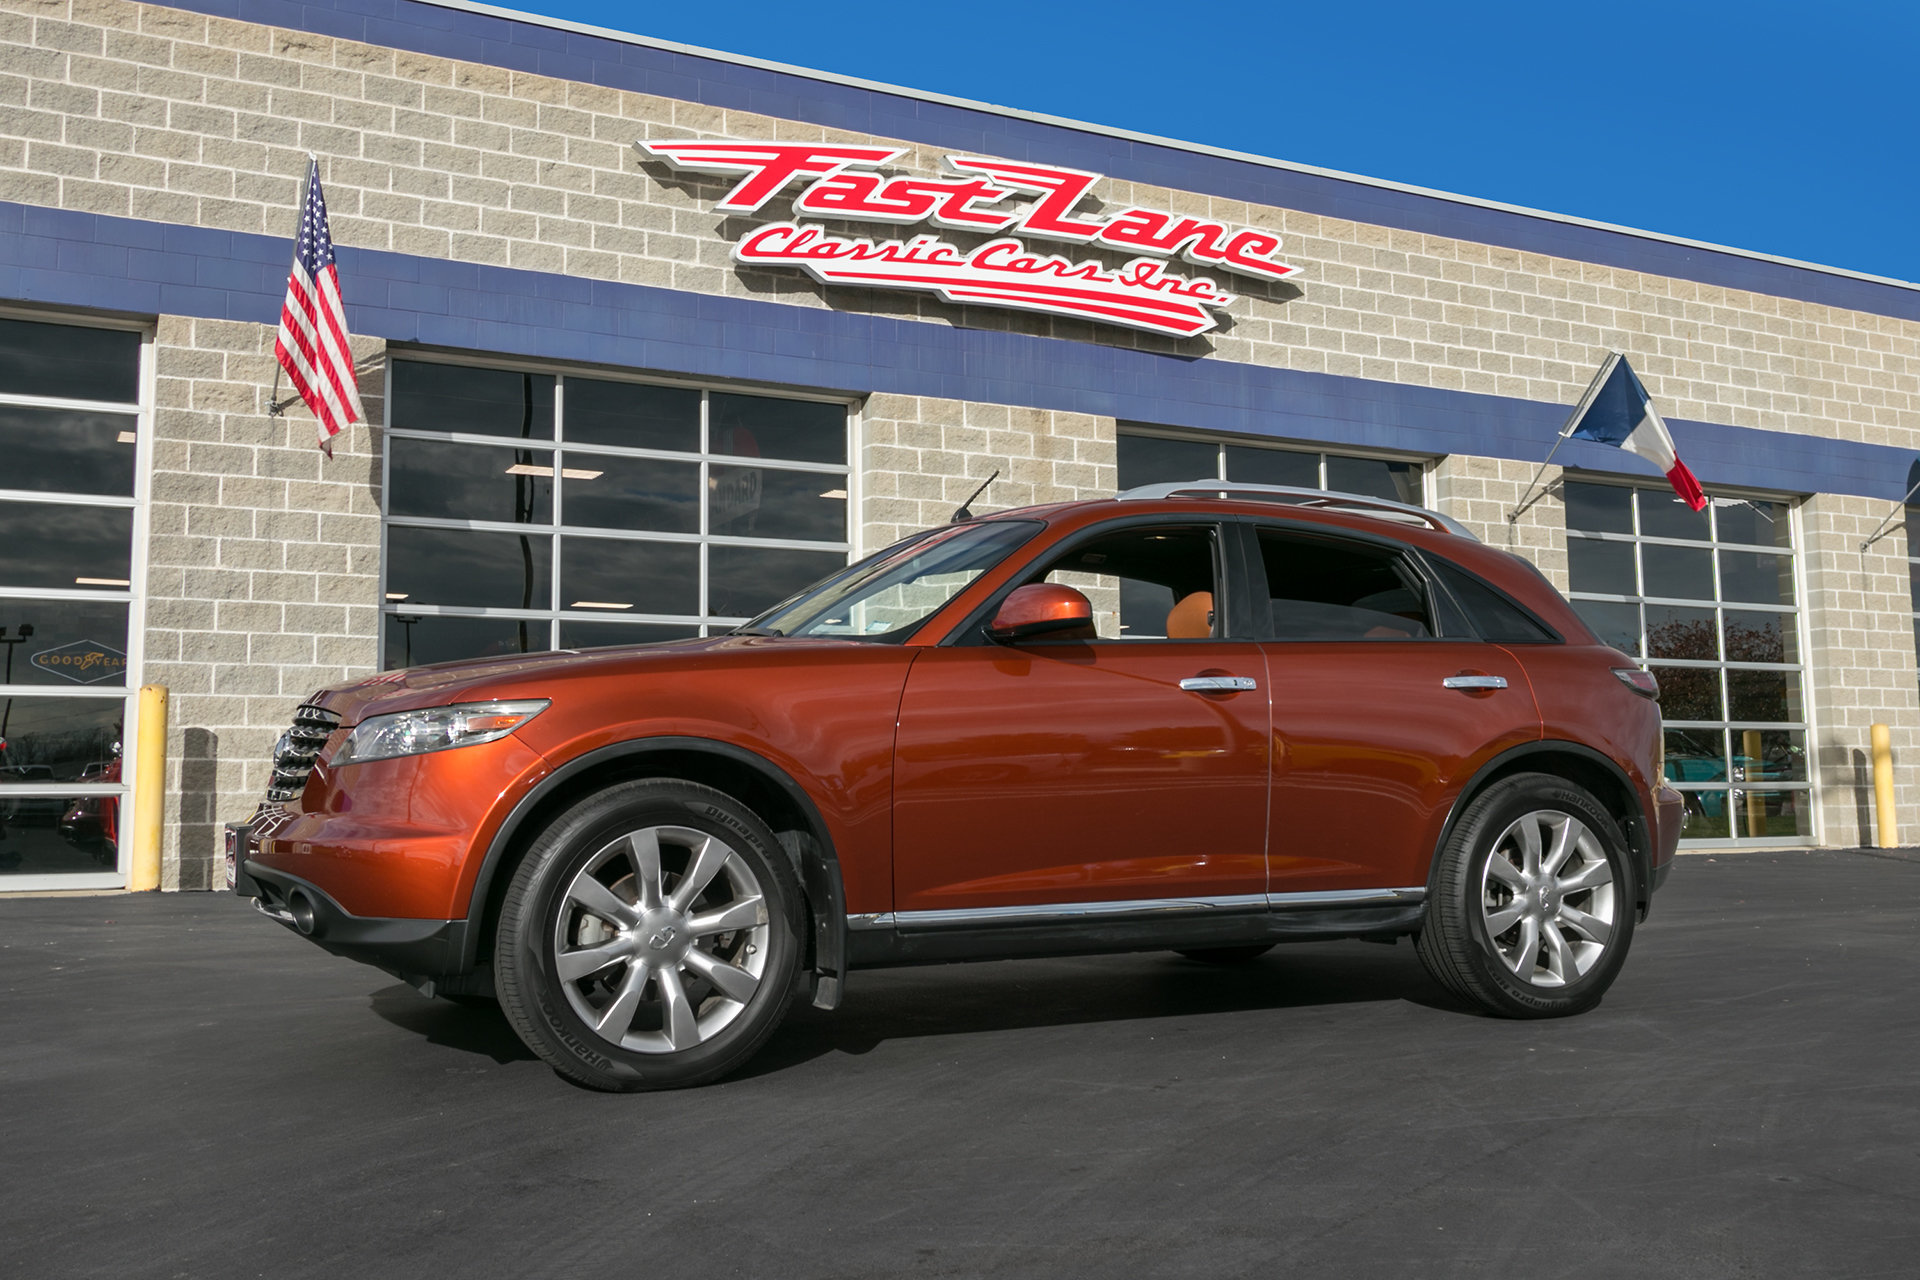 2007 infiniti fx35 fast lane classic cars for Plaza motors infiniti service department